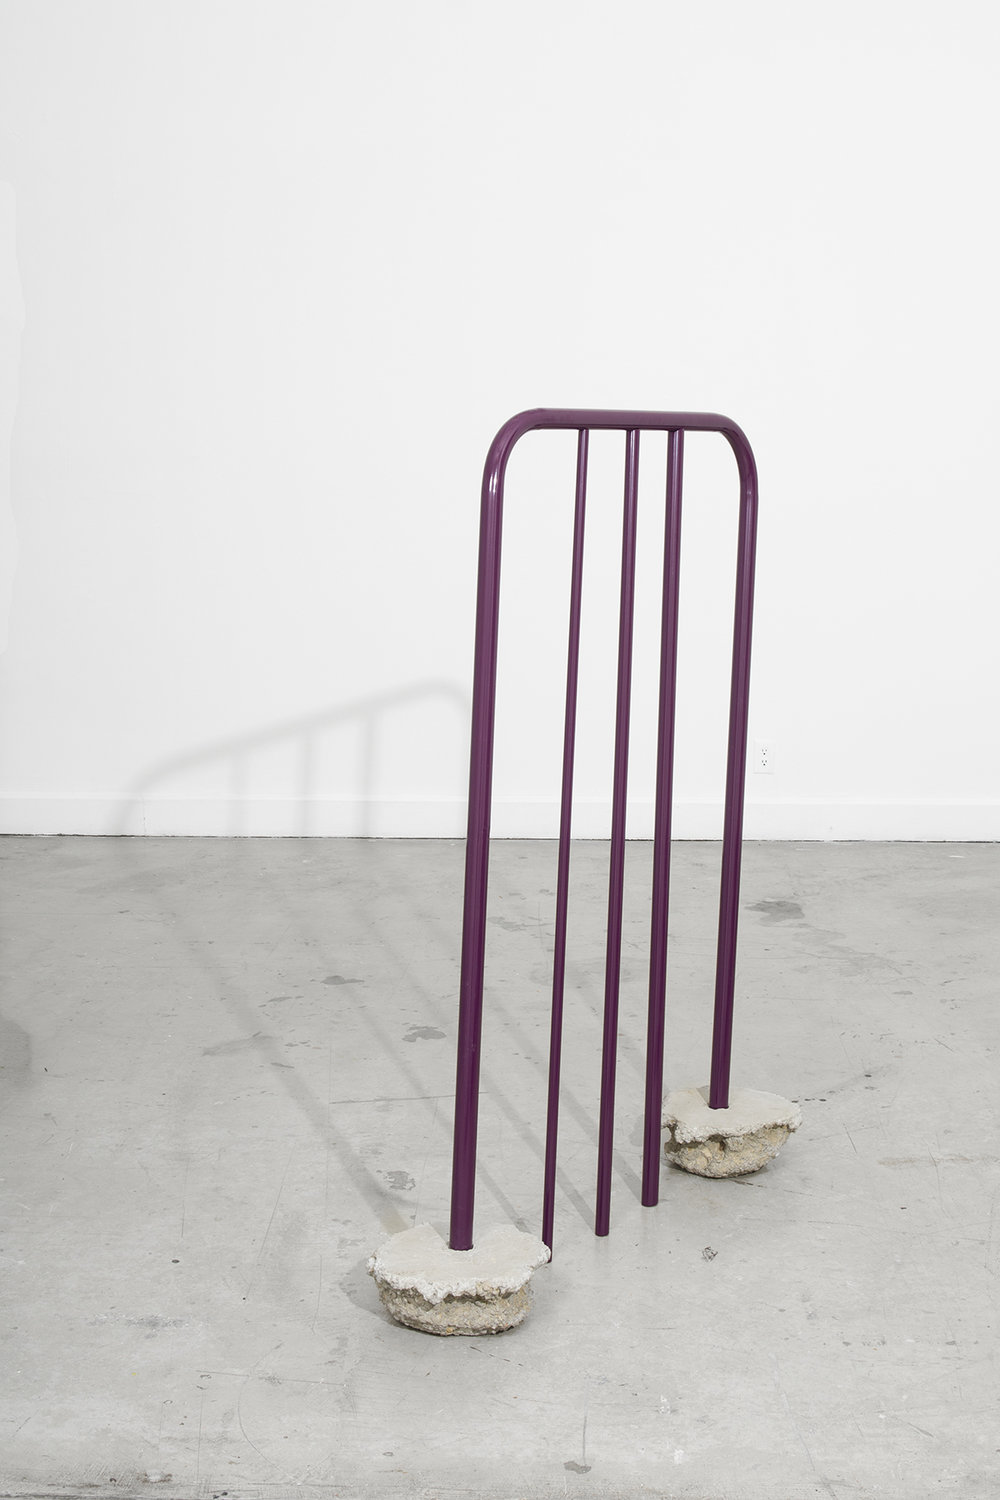 Tanya Brodsky  Purple Leaning , 2016 Powder coated steel, Quikrete 152.4 x 91.4 x 45.7 cm 60 x 36 x 18 in Photo: © Tanya Brodsky Courtesy of Ochi Projects